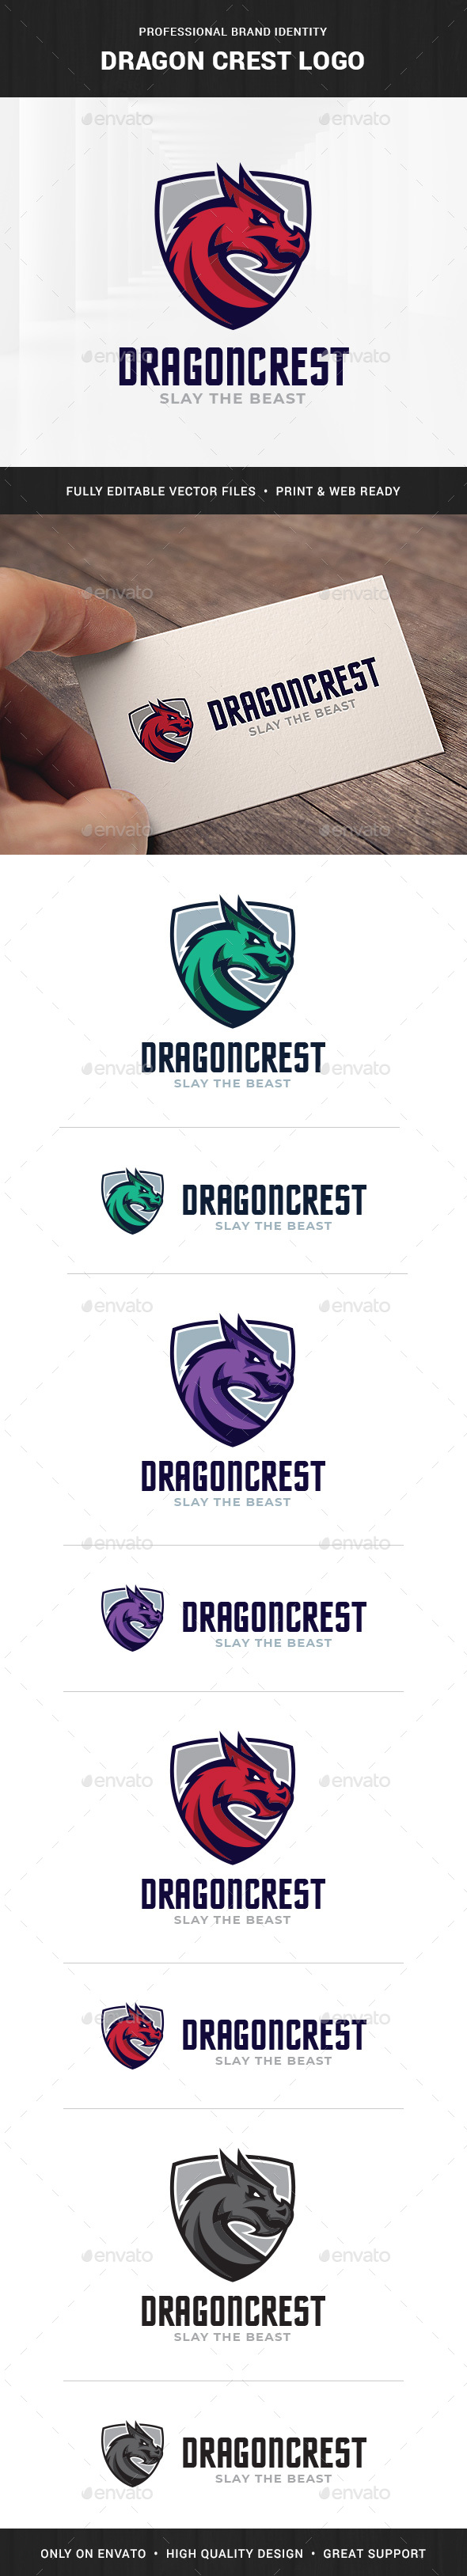 Dragon Crest Logo Template - Animals Logo Templates